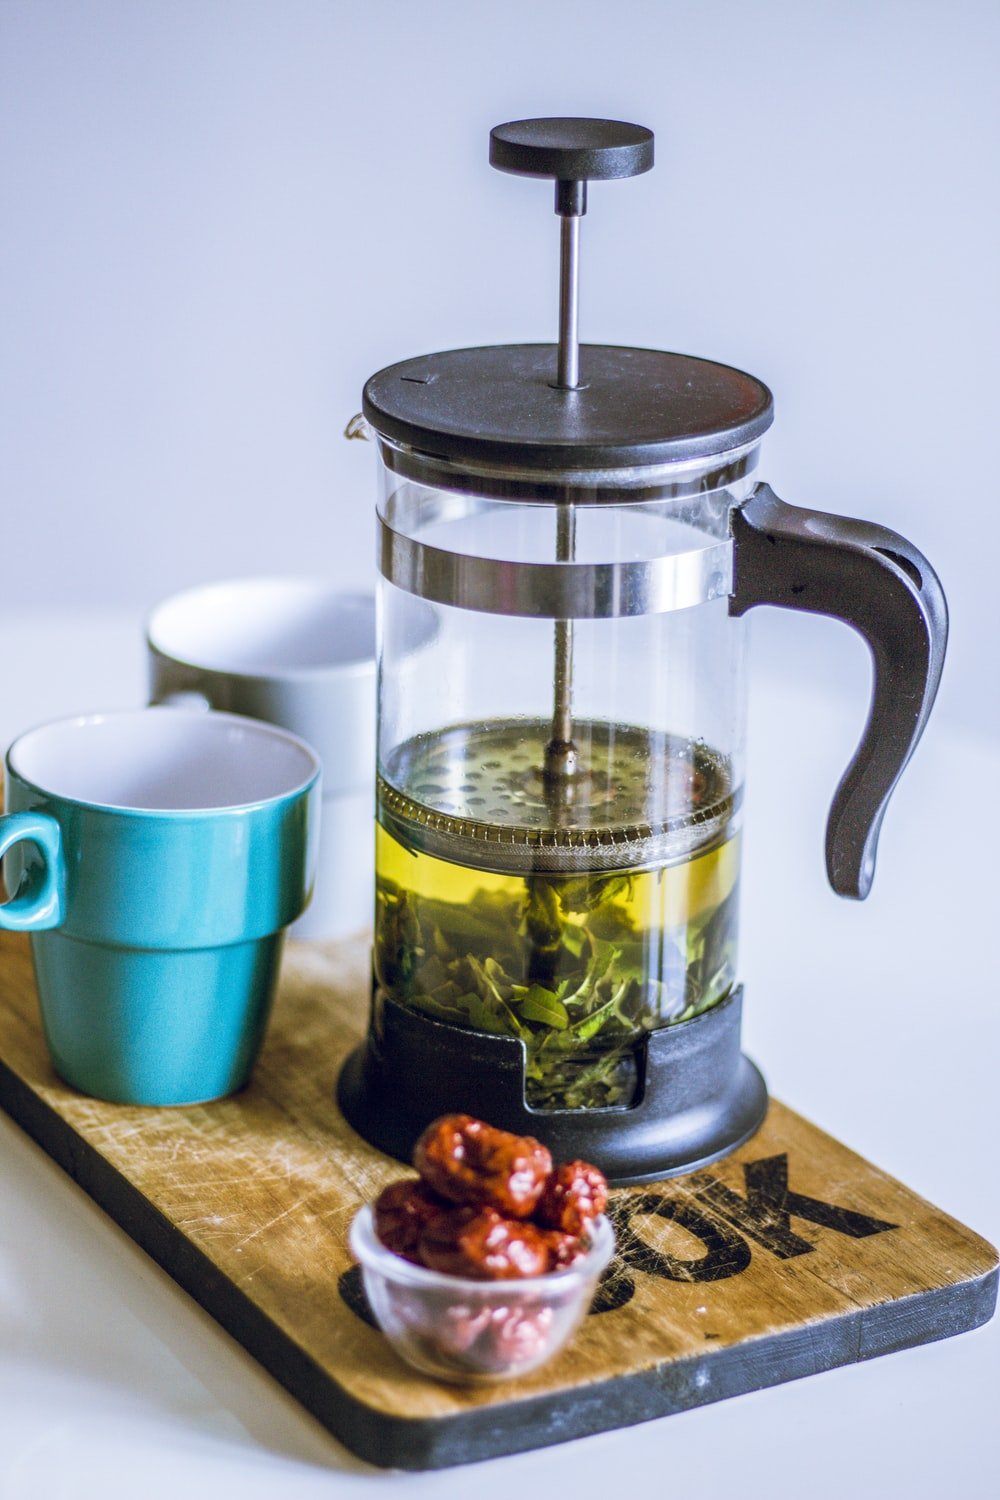 silver and black coffee press beside blue ceramic mug on brown wooden chopping board